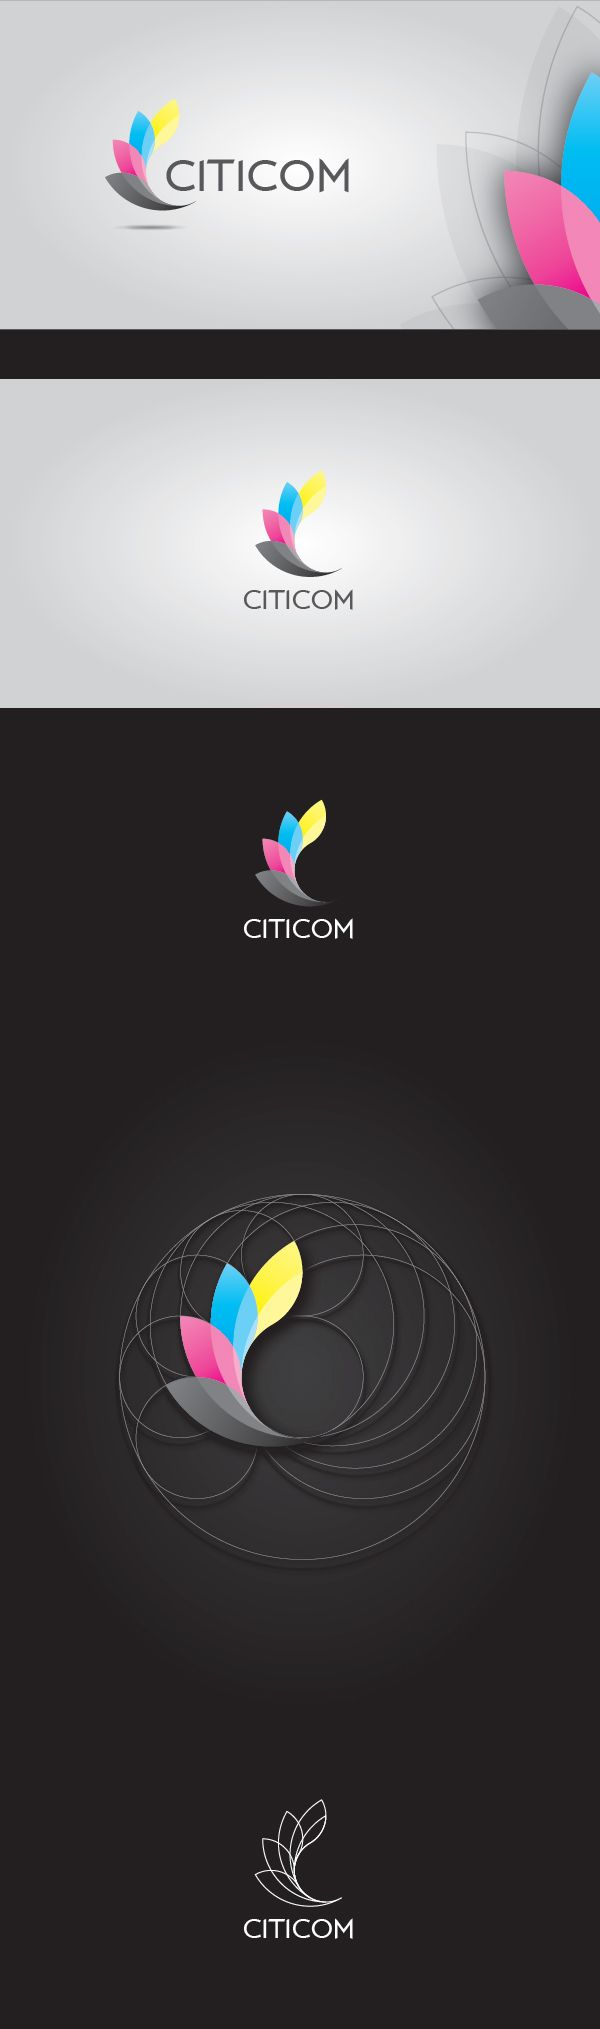 """CITICOM corporate identity concept. Inspired by CMYK colors, flying papers and letter """"C""""."""